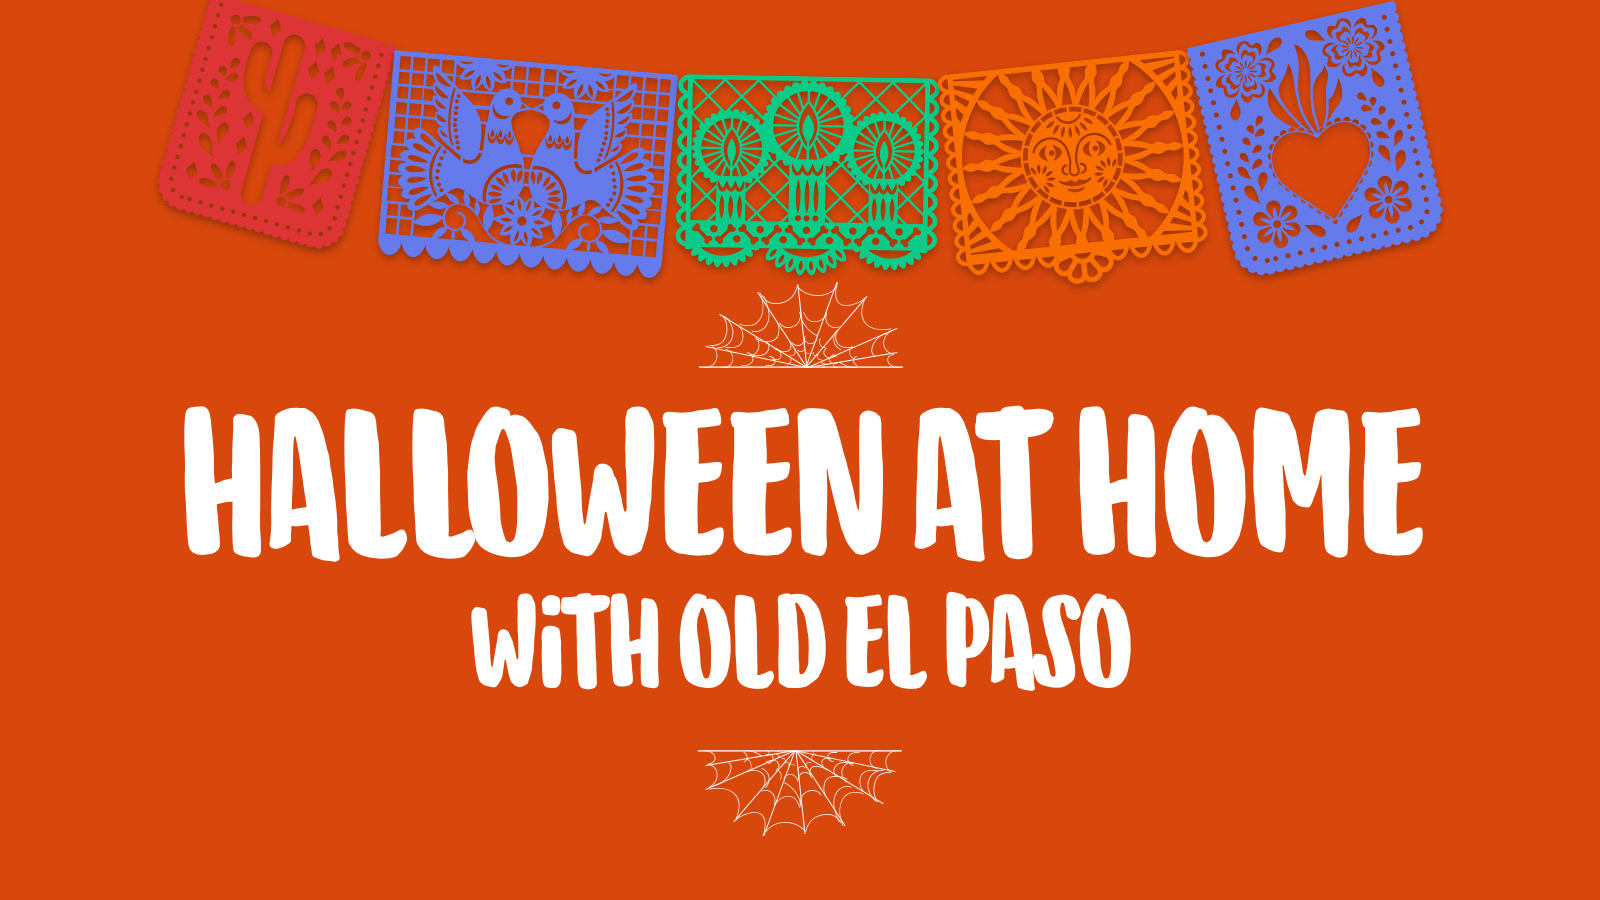 Celebrate Halloween with Old El Paso